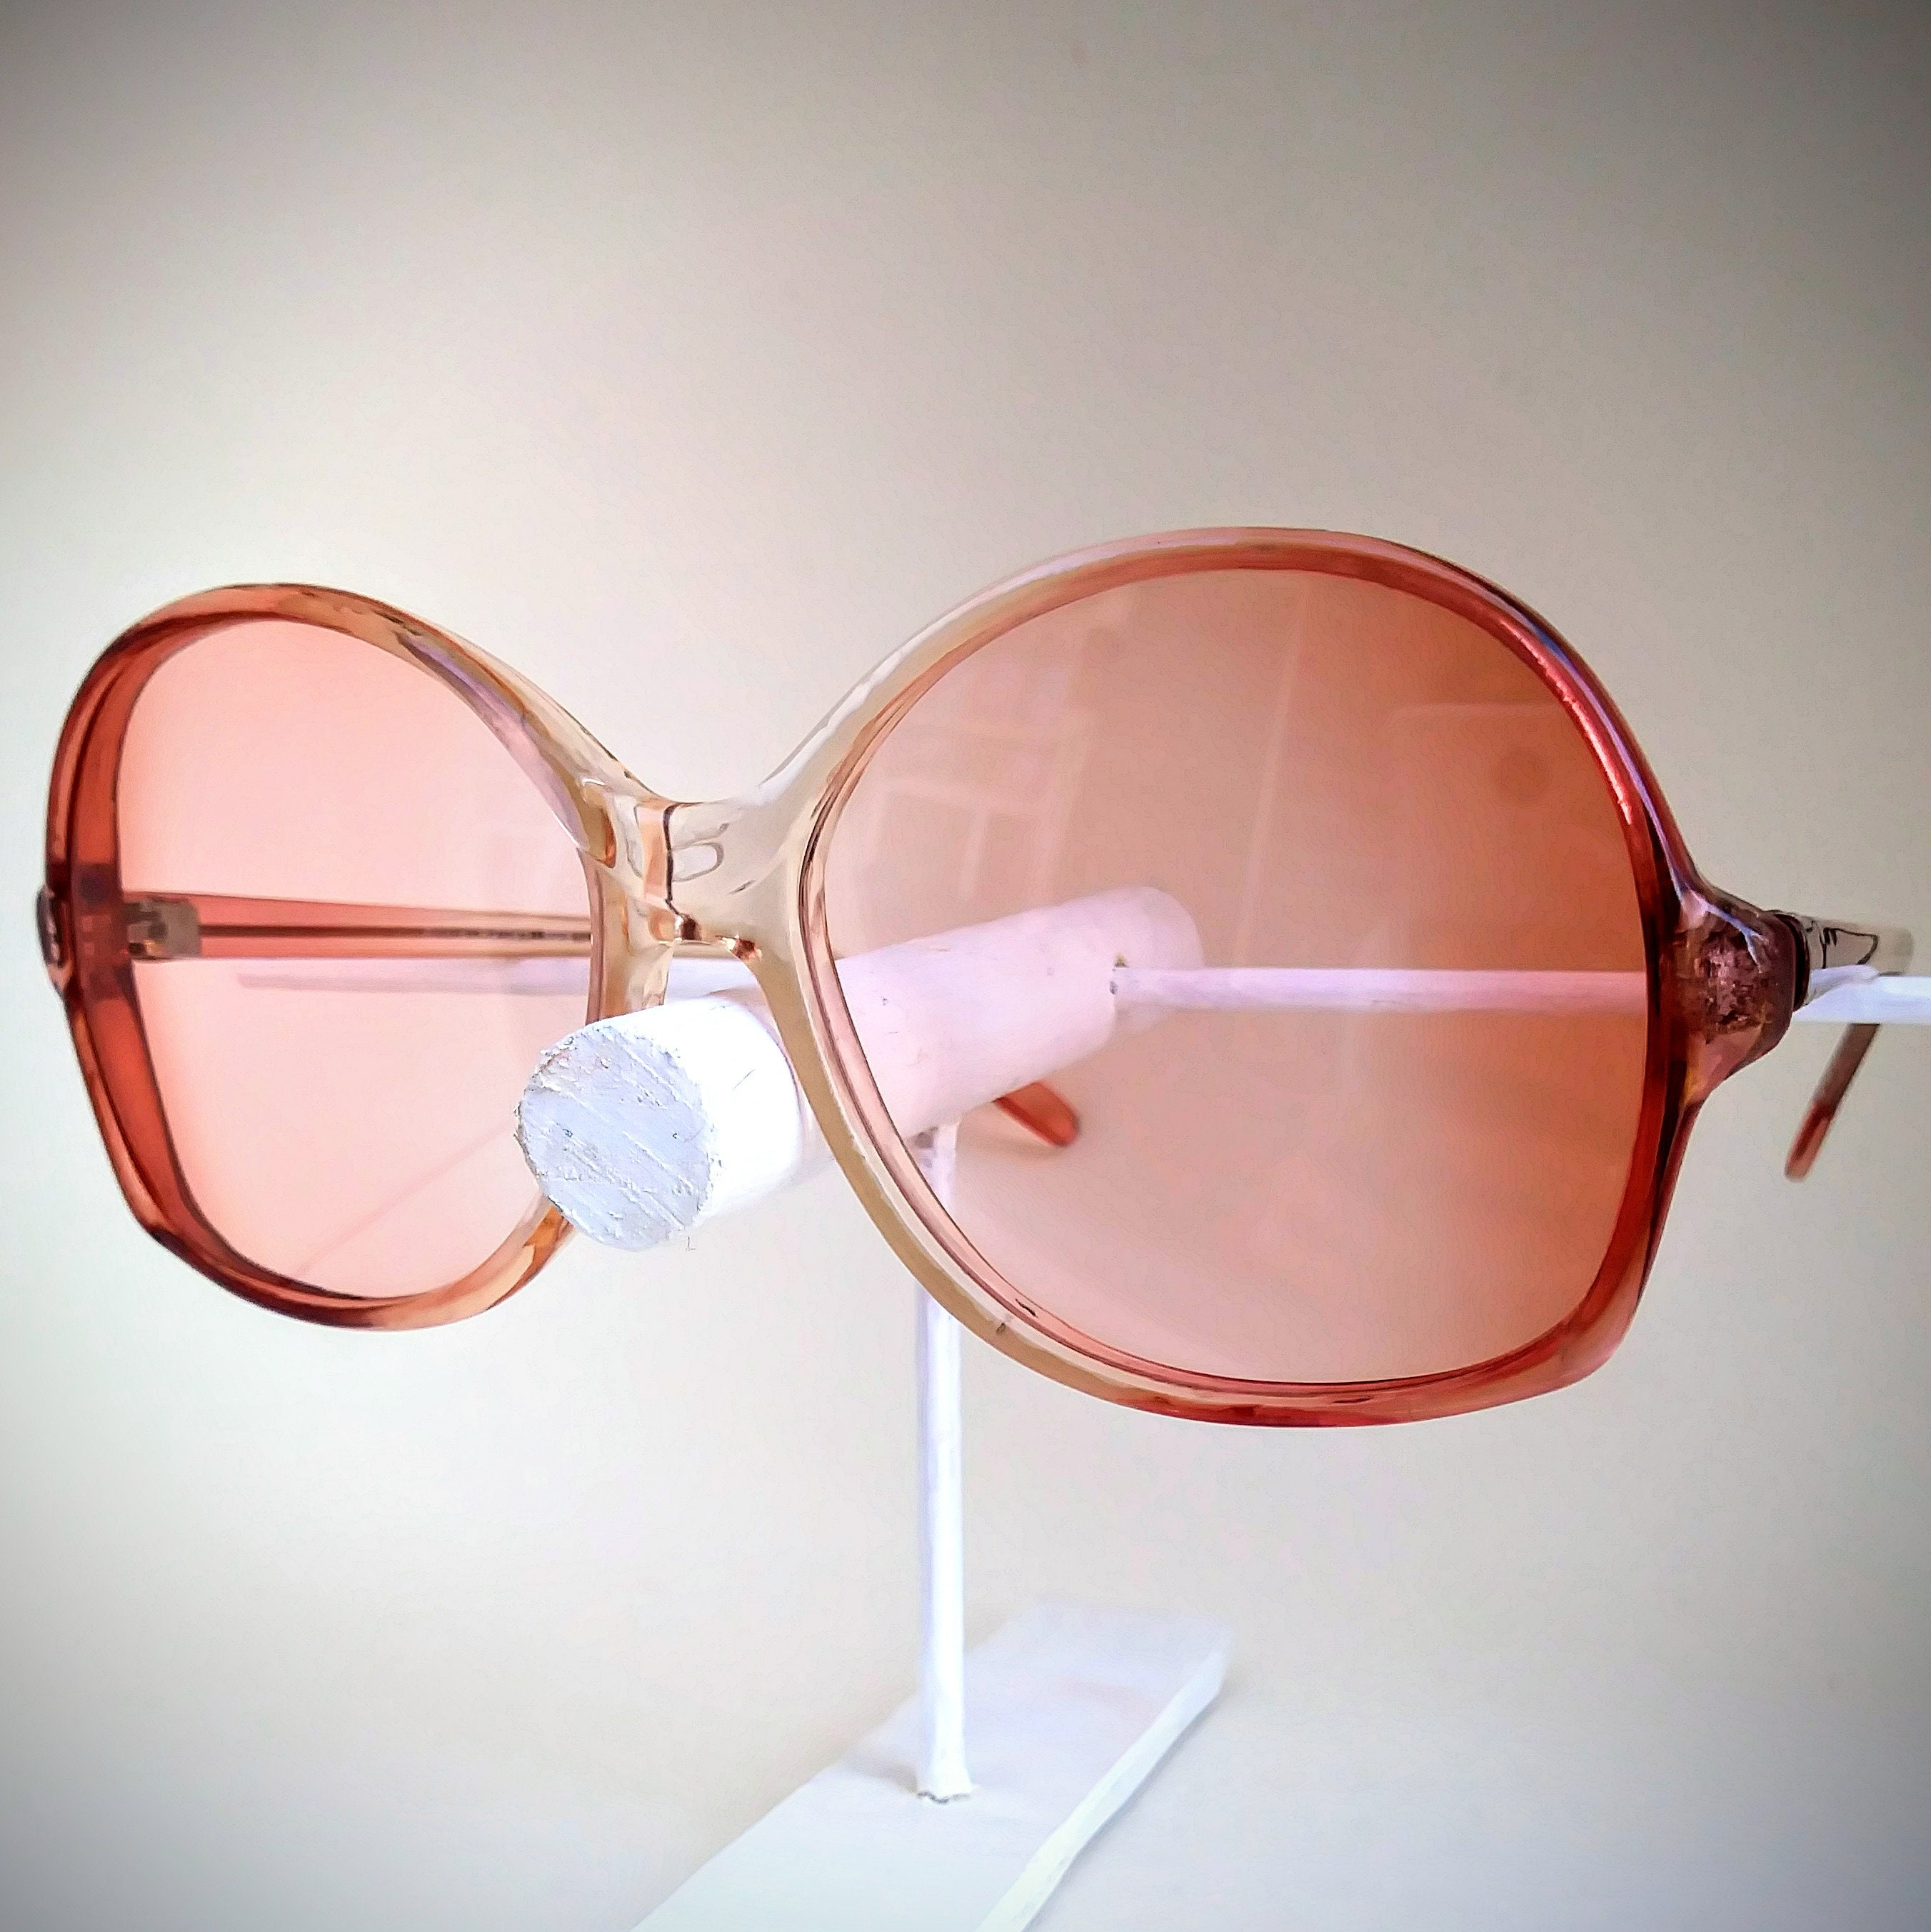 6b3efc6dfd Ella Non-Prescription Vintage Eyeglasses with Rose Tinted Lenses  Ready to  Wear